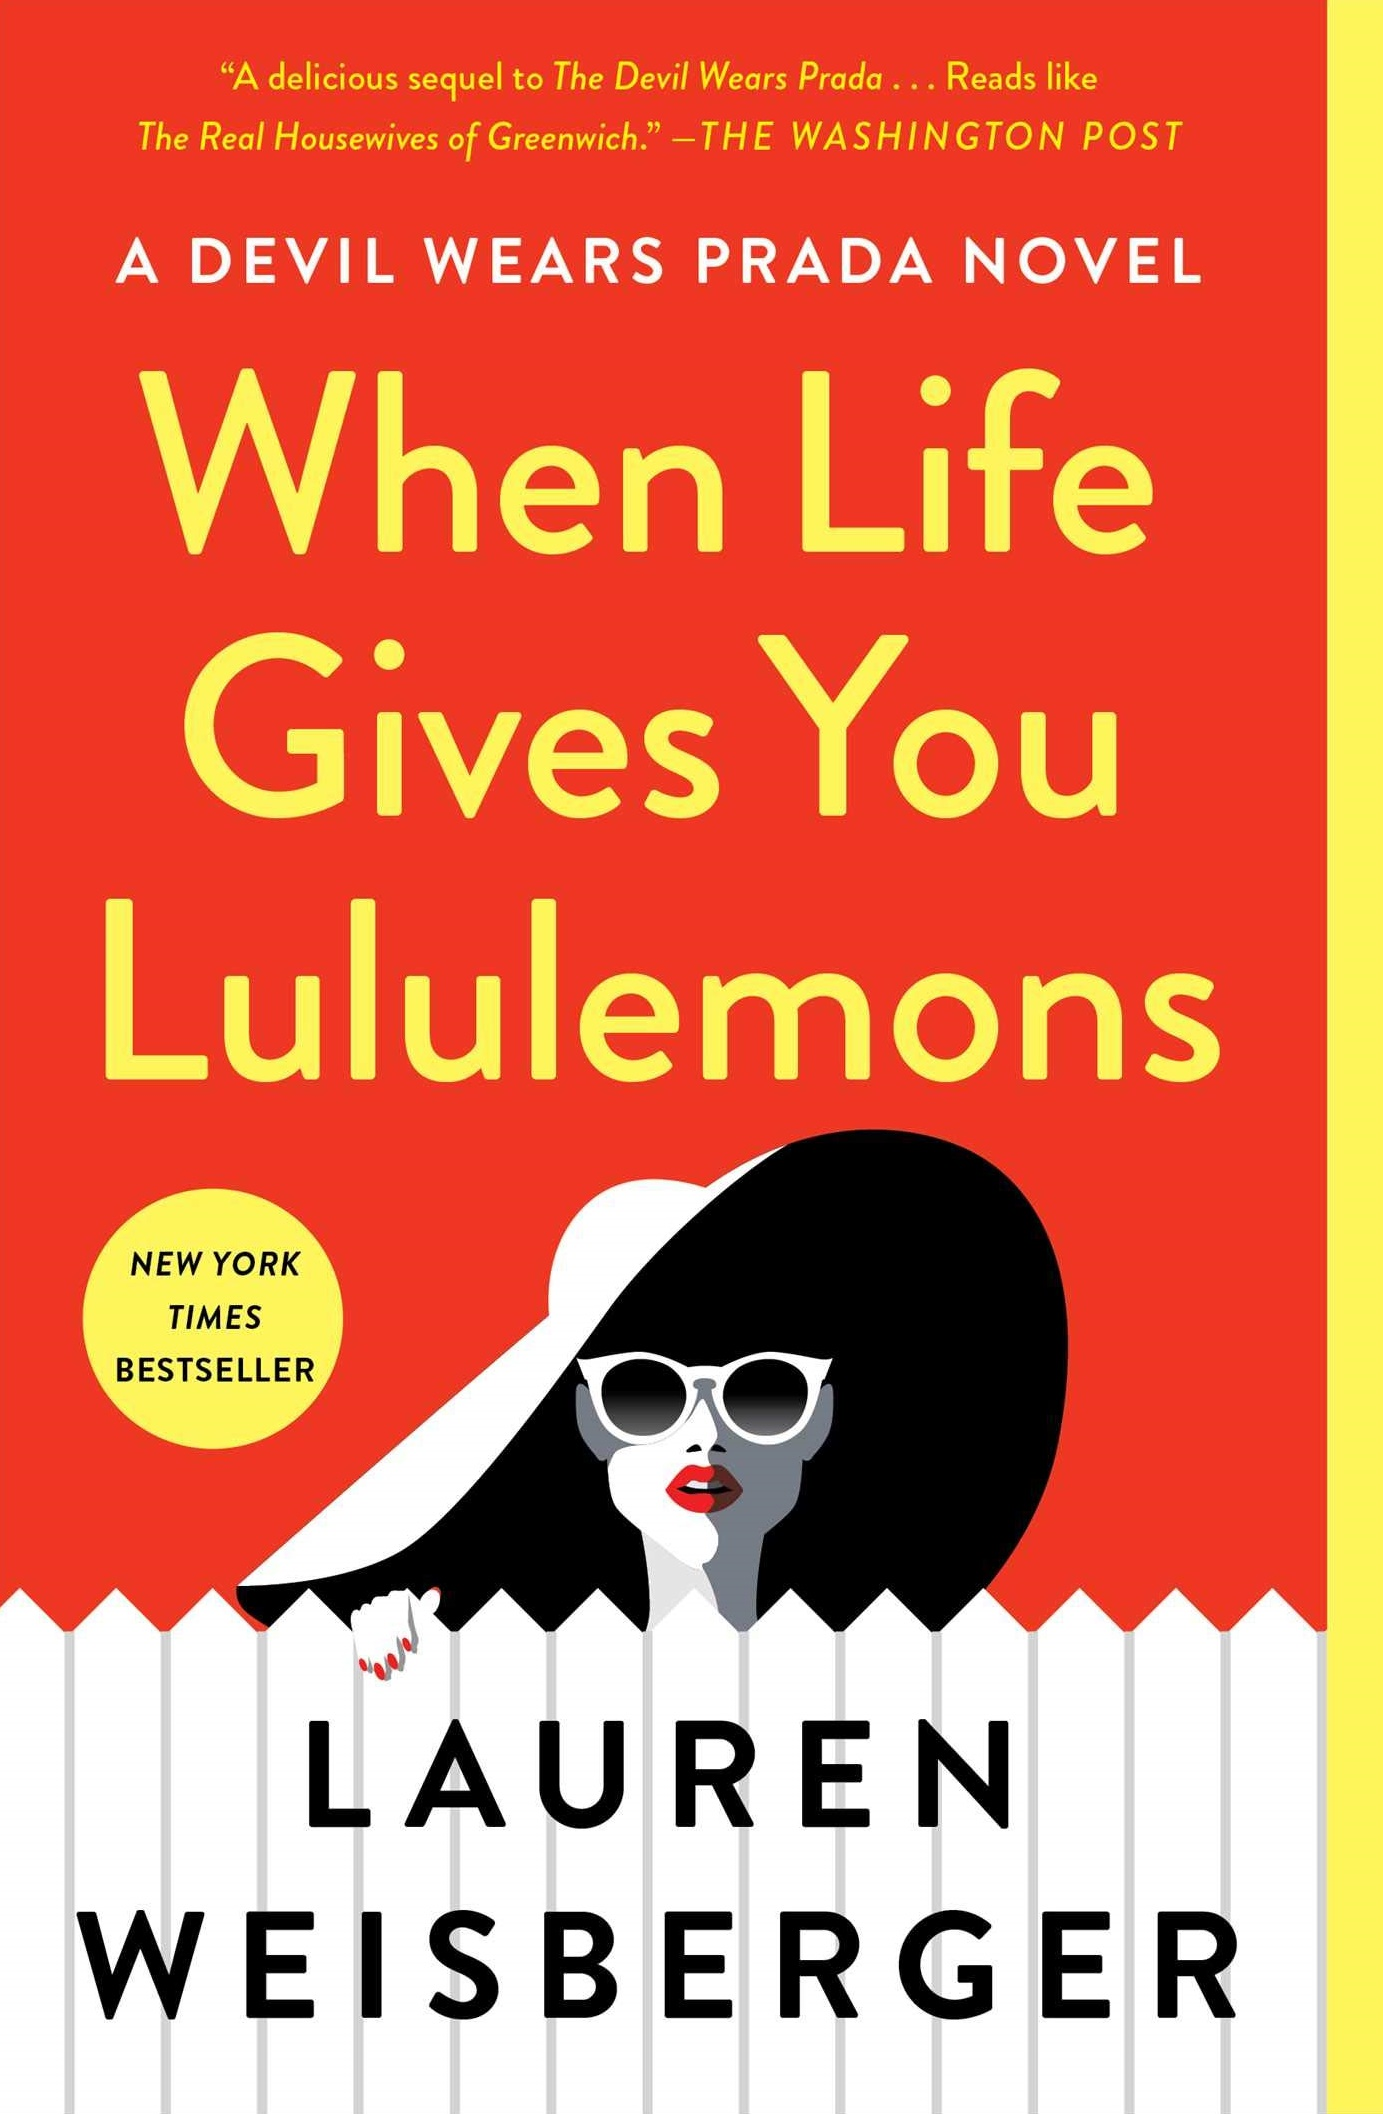 Romance Books Like The Bold Type, cover of When Life Gives You Lululemons by Lauren Weisberger, books